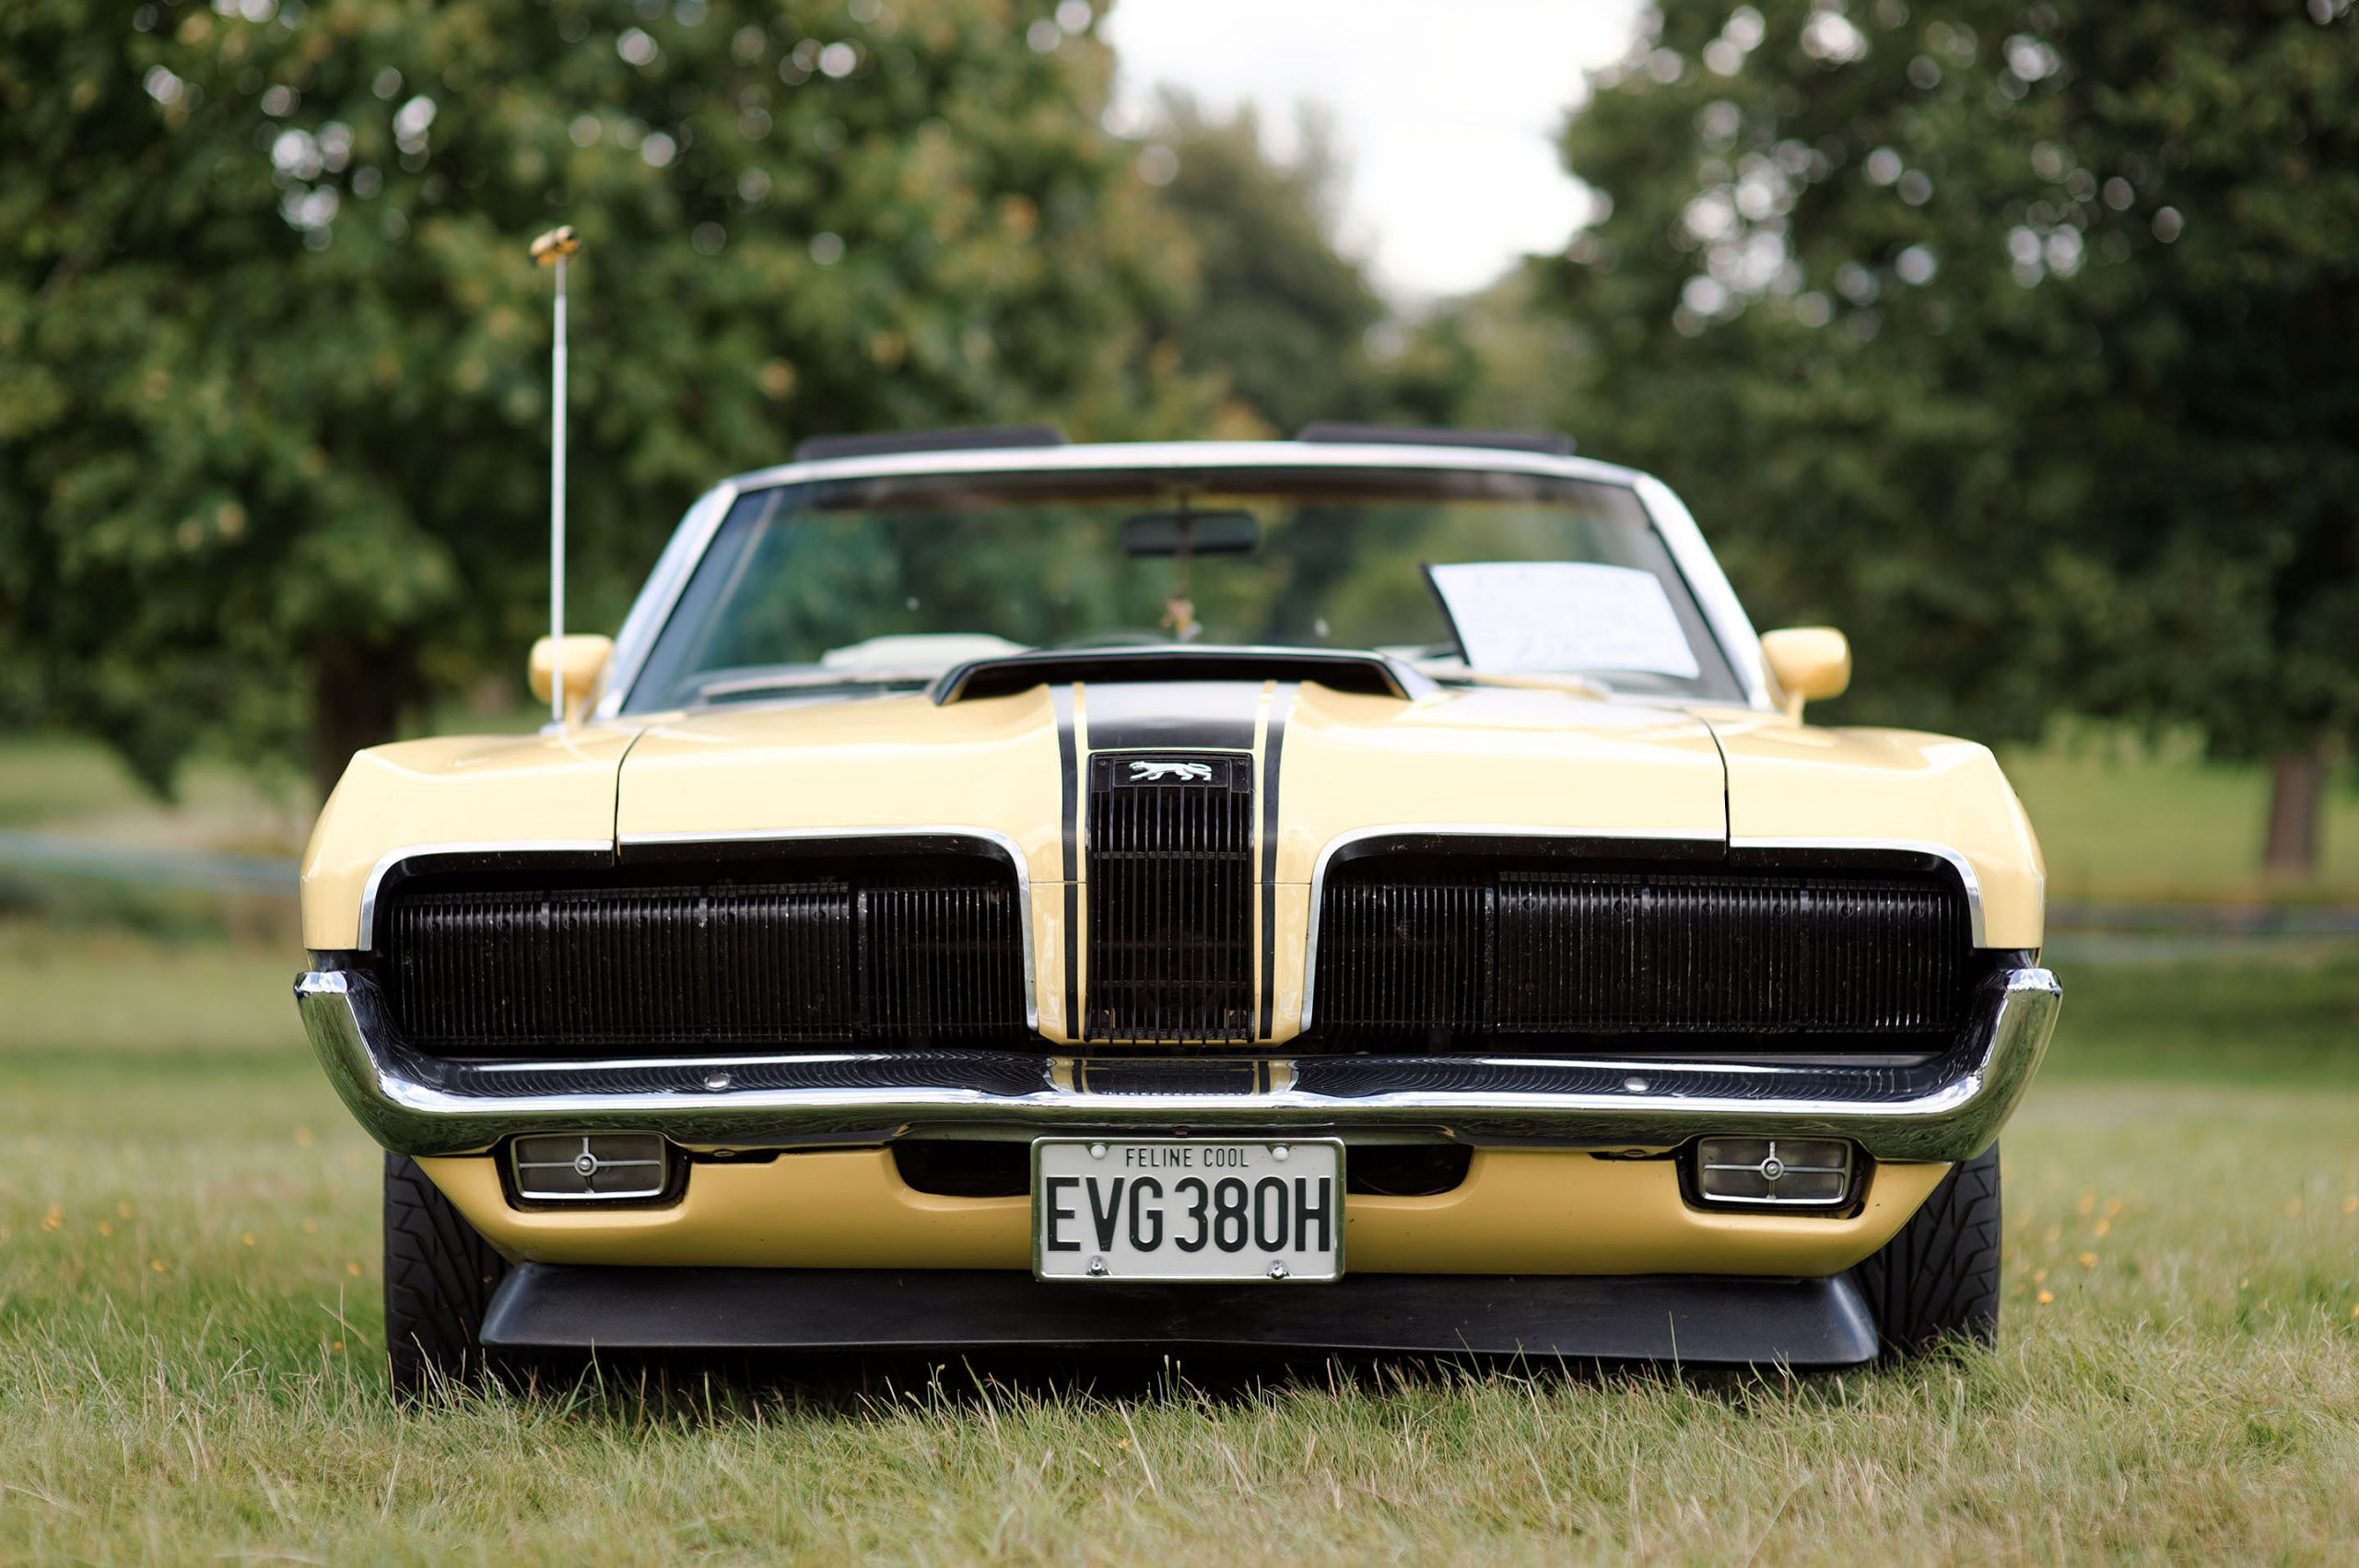 Mercury Cougar 1970 At Helmingham Festival Of Clics And Sports Cars 2016